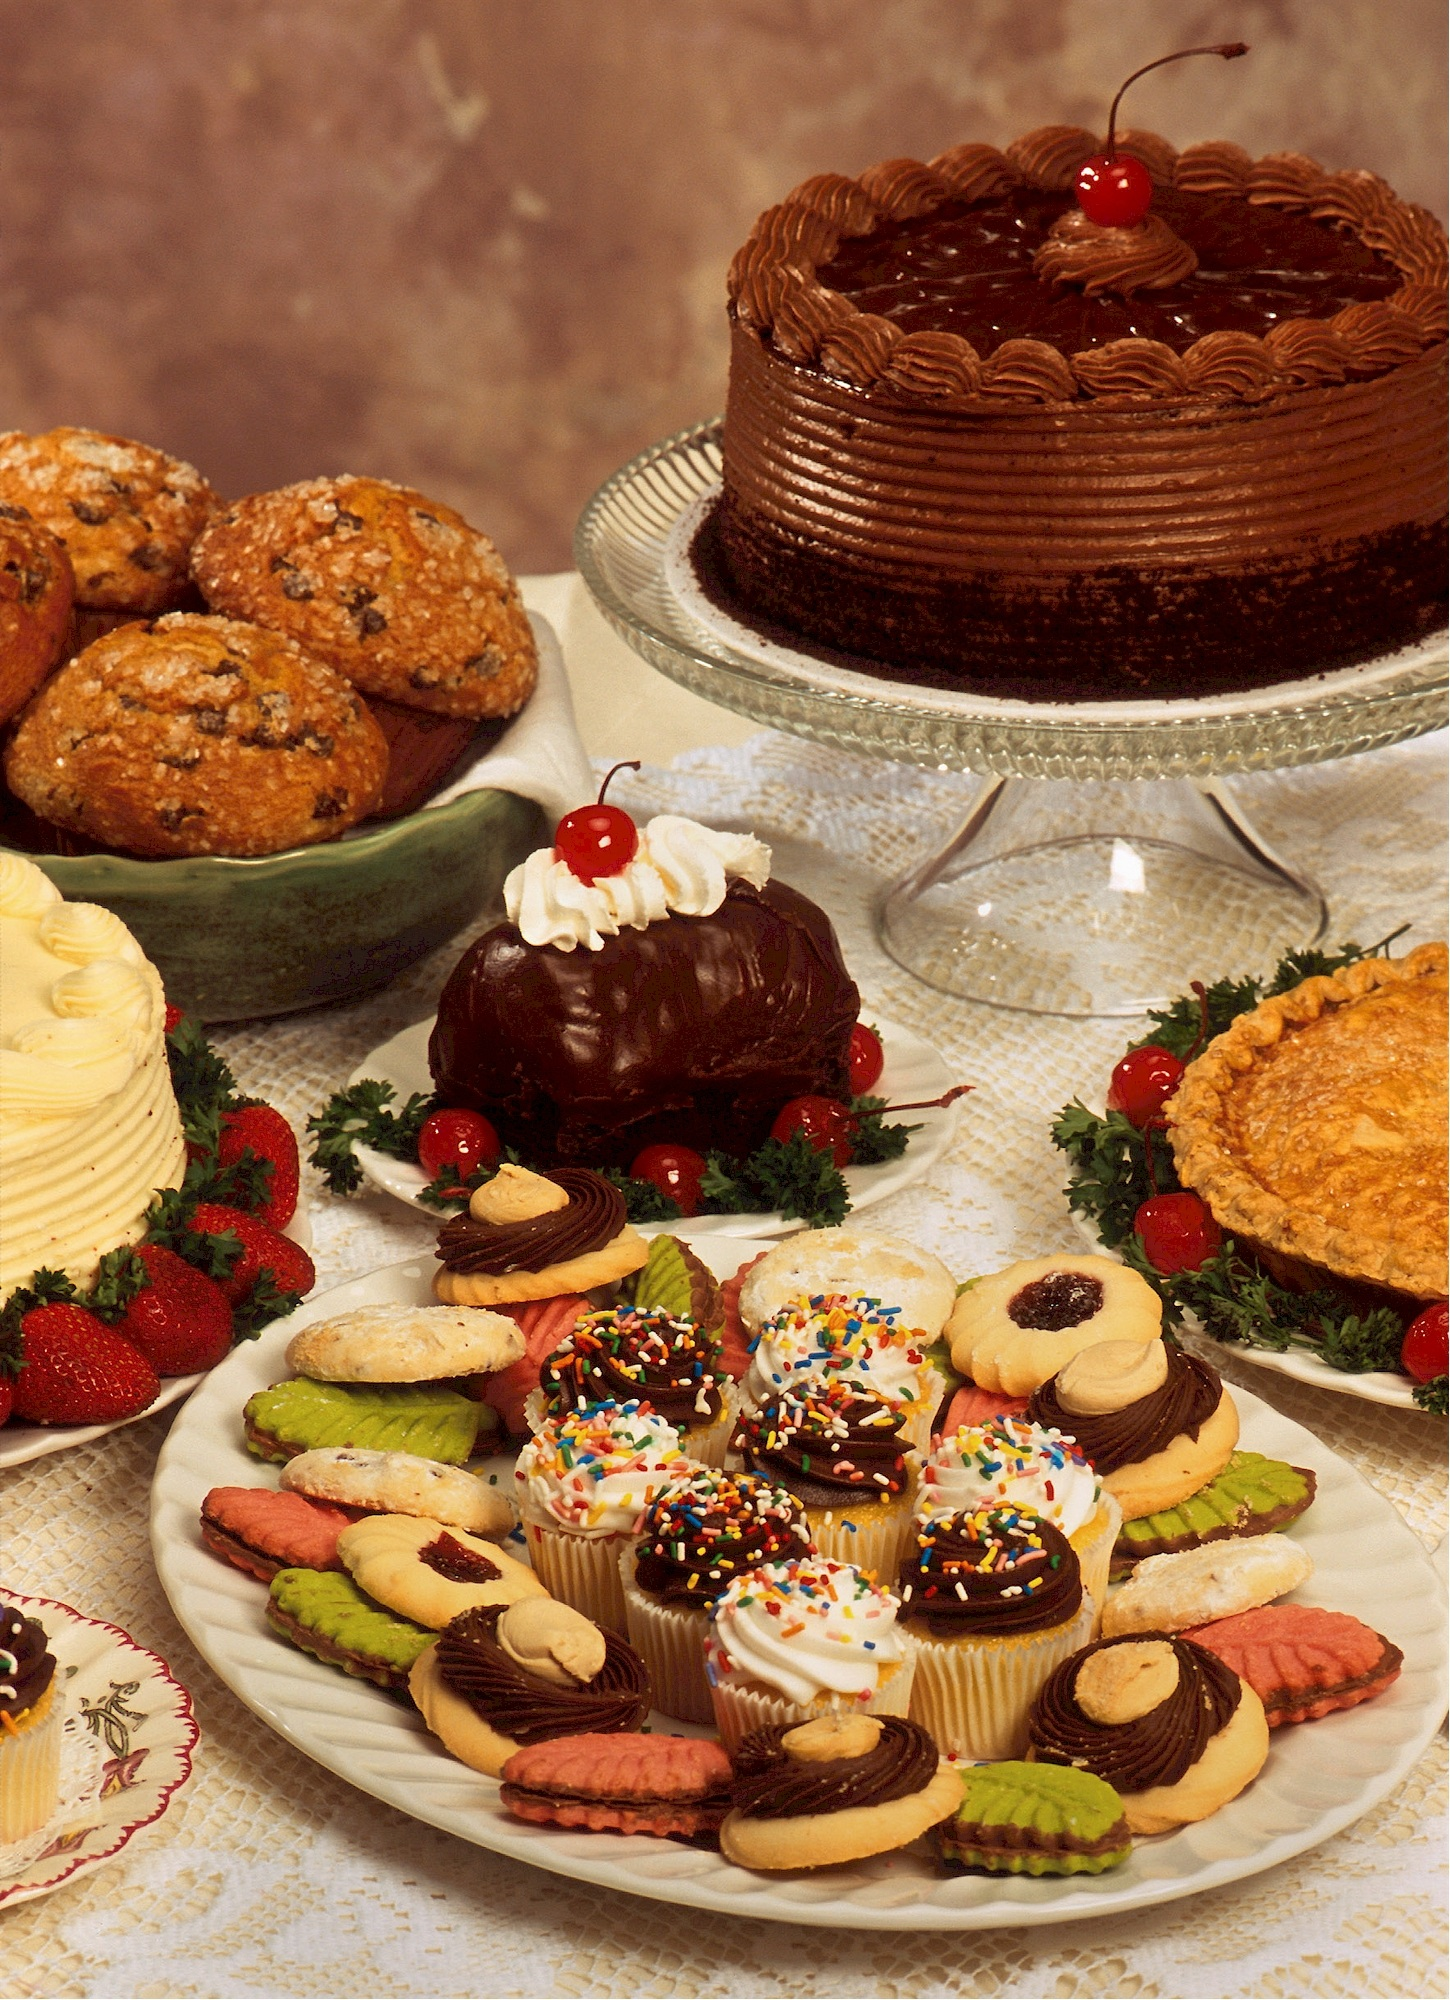 Dessert Table, Baked, Biscuit, Cookie, Dessert, HQ Photo